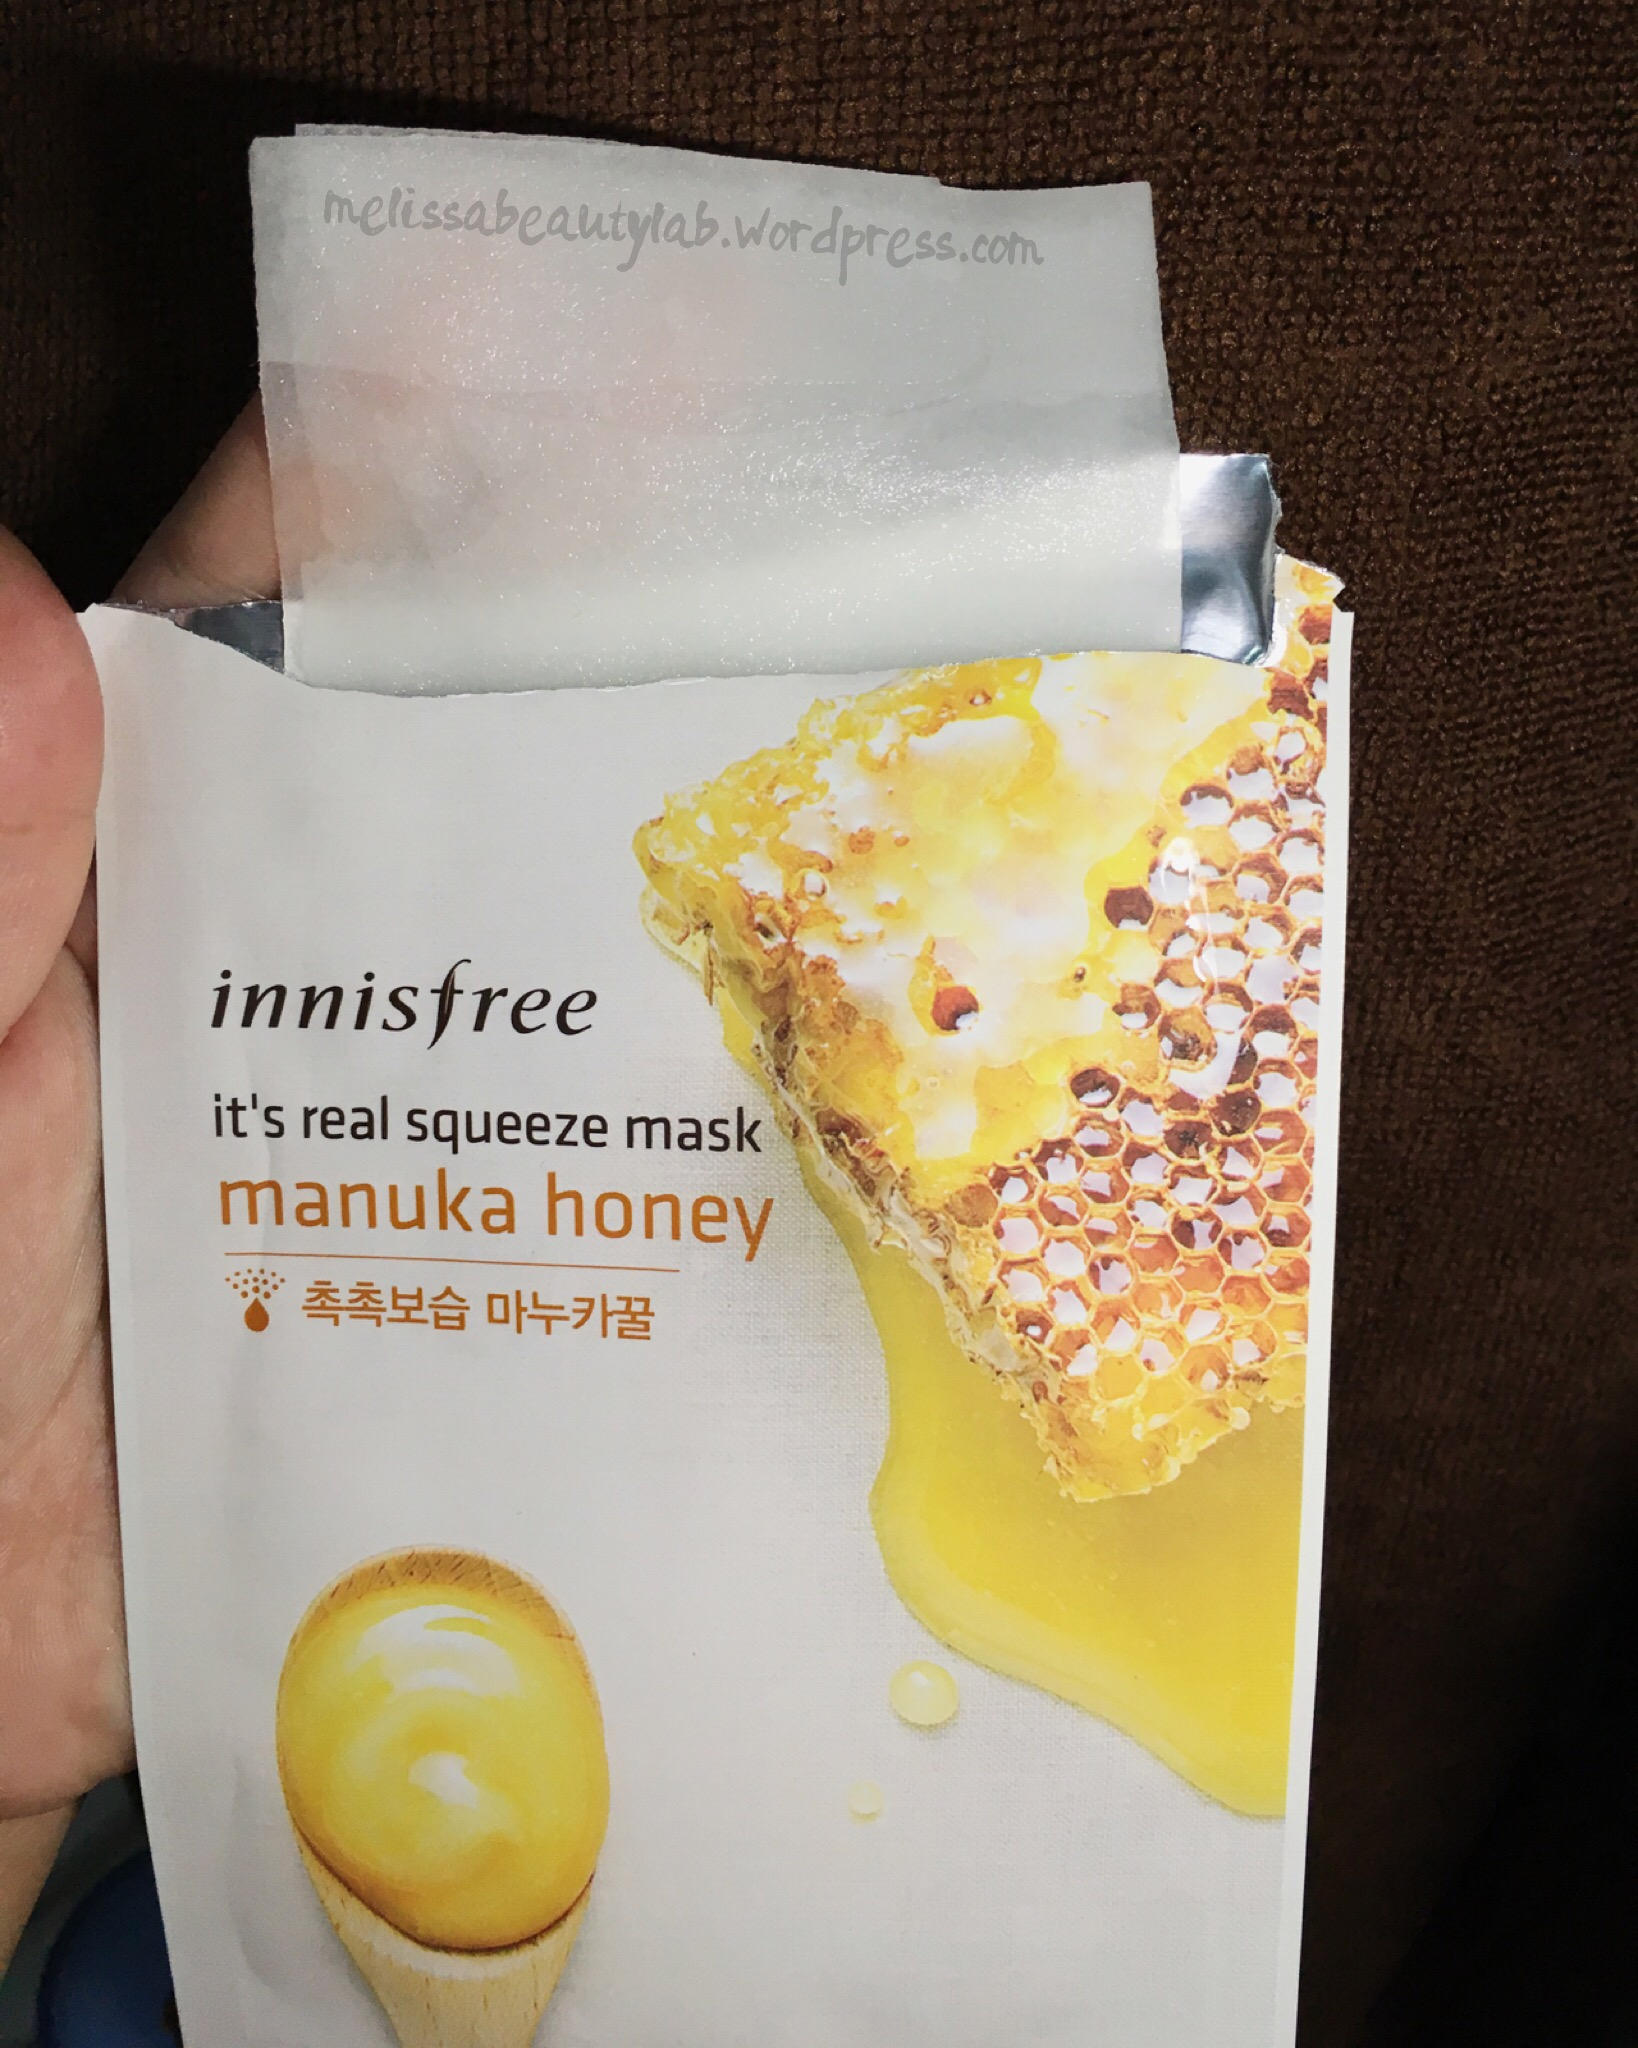 Mask Chill 2 Innisfree Its Real Squeeze Manuka Honey Bija 20ml Doused With Of Essence